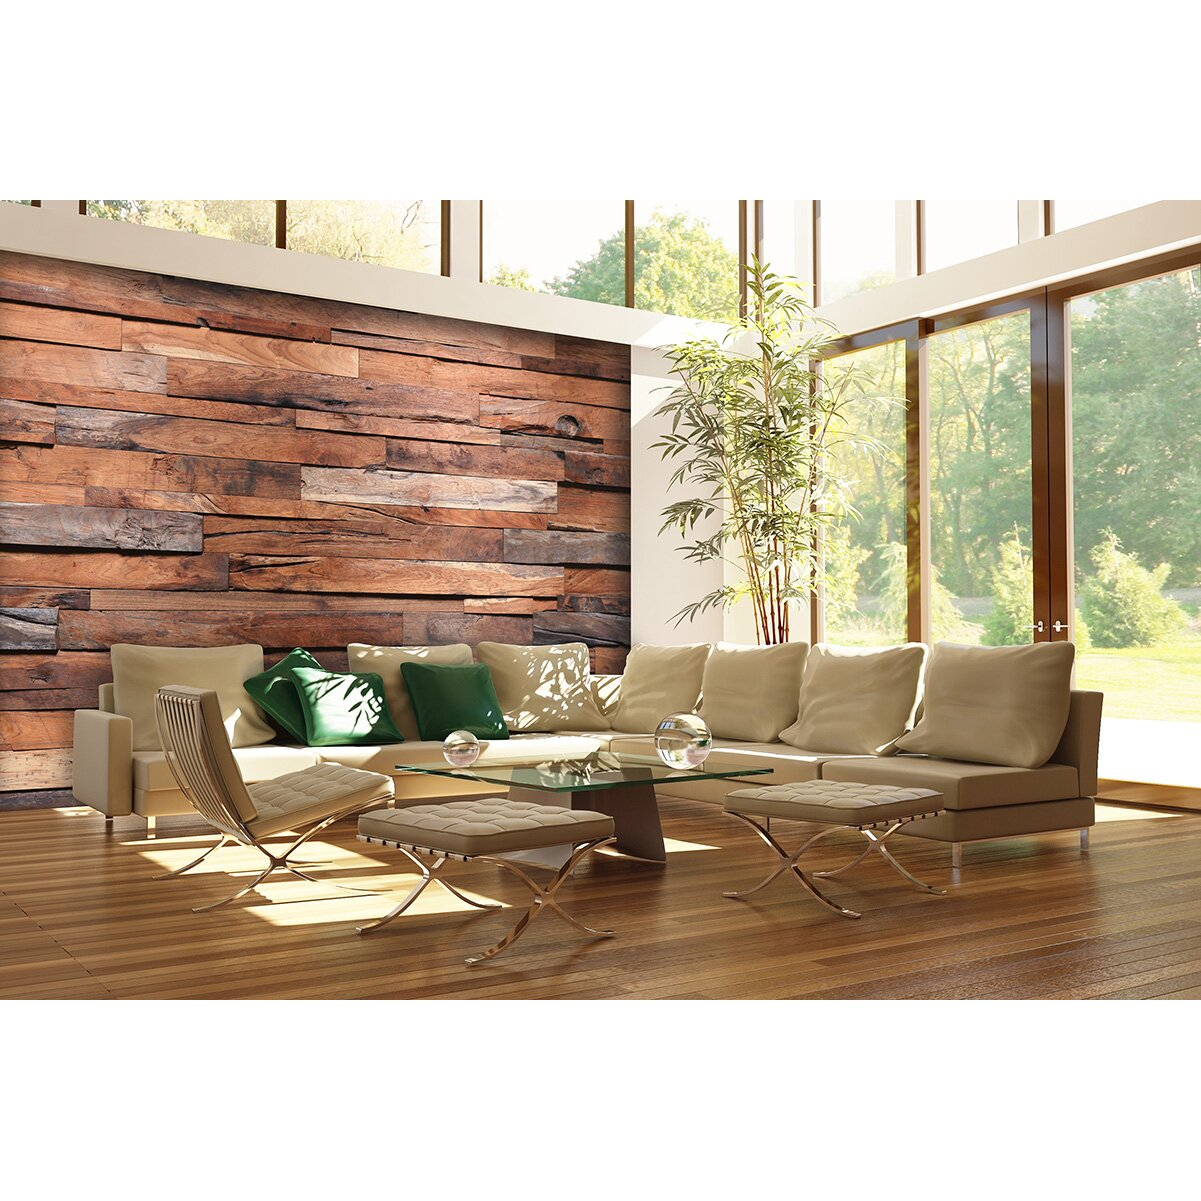 wallpops reclaimed wood adhesive wall mural amp reviews vintage wood mural wooden wallpaper mural stickythings